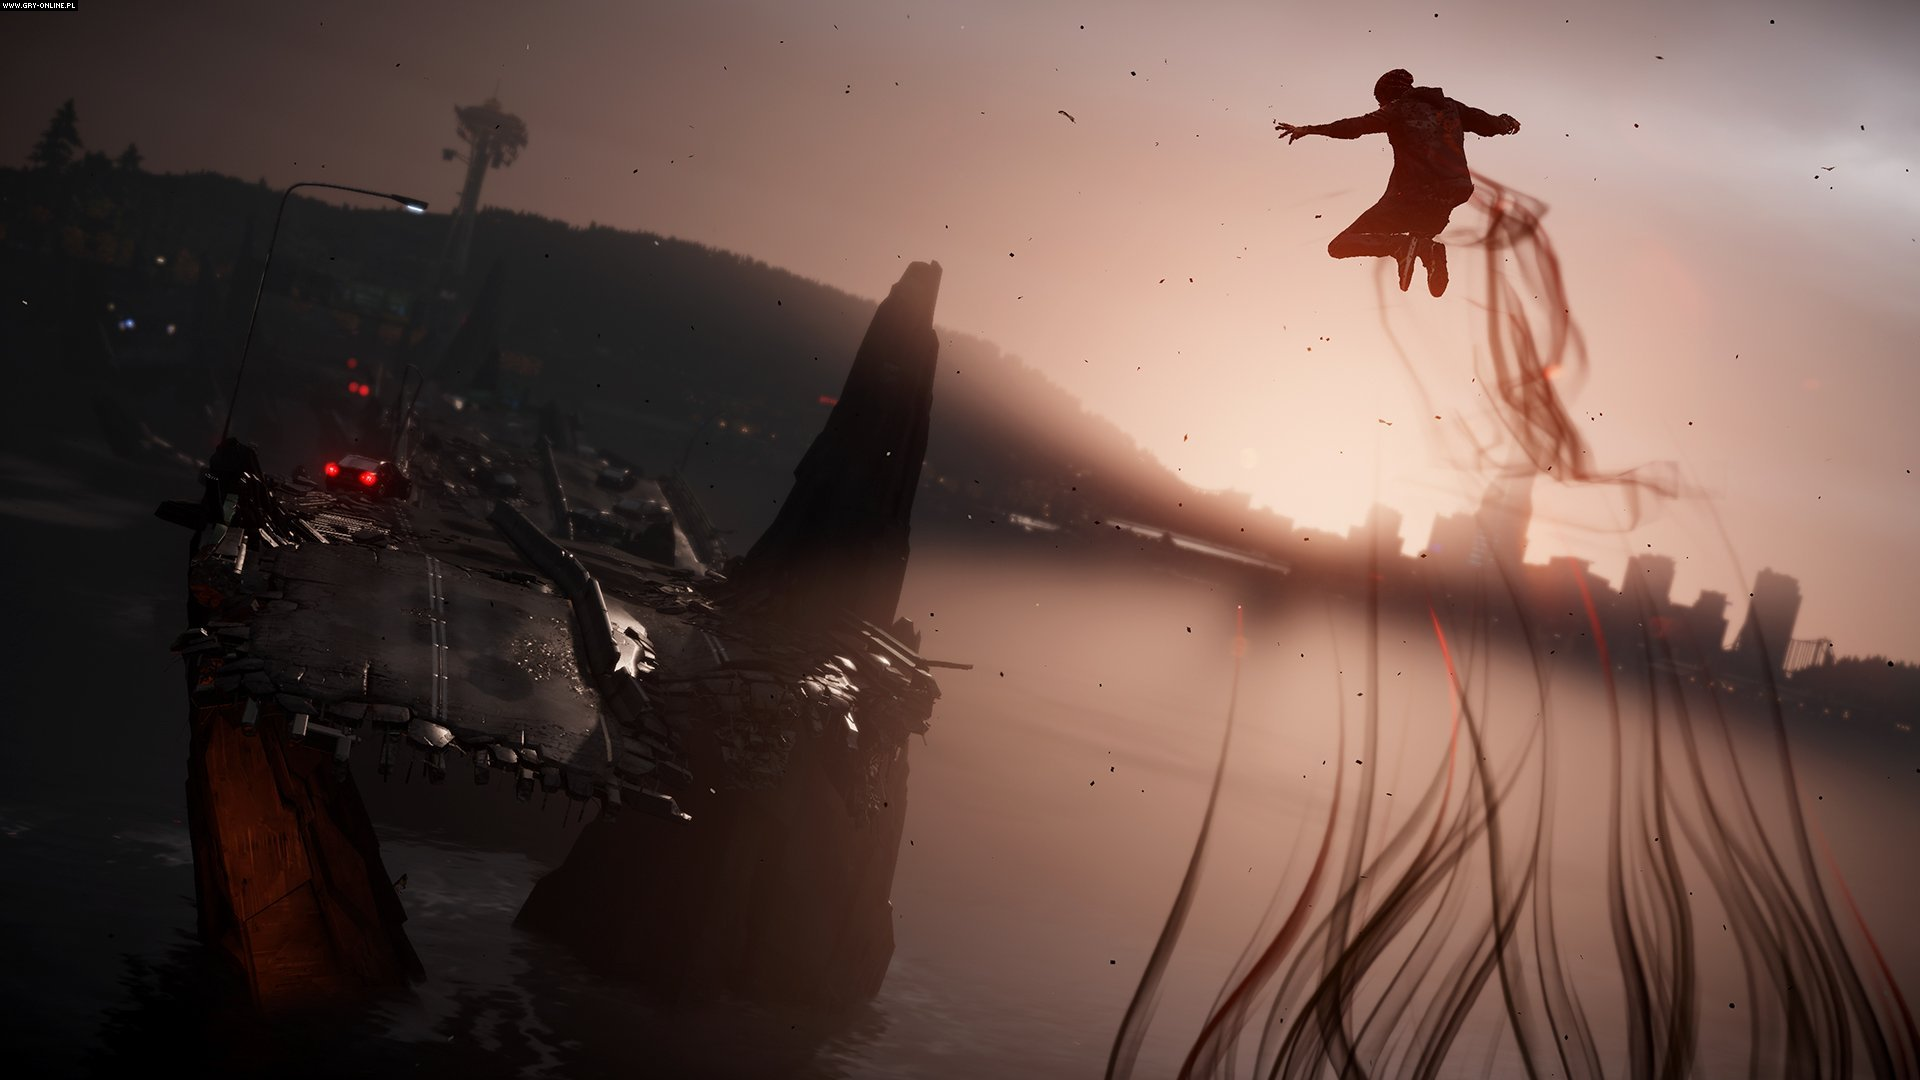 inFamous: Second Son PS4 Games Image 12/138, Sucker Punch, Sony Interactive Entertainment